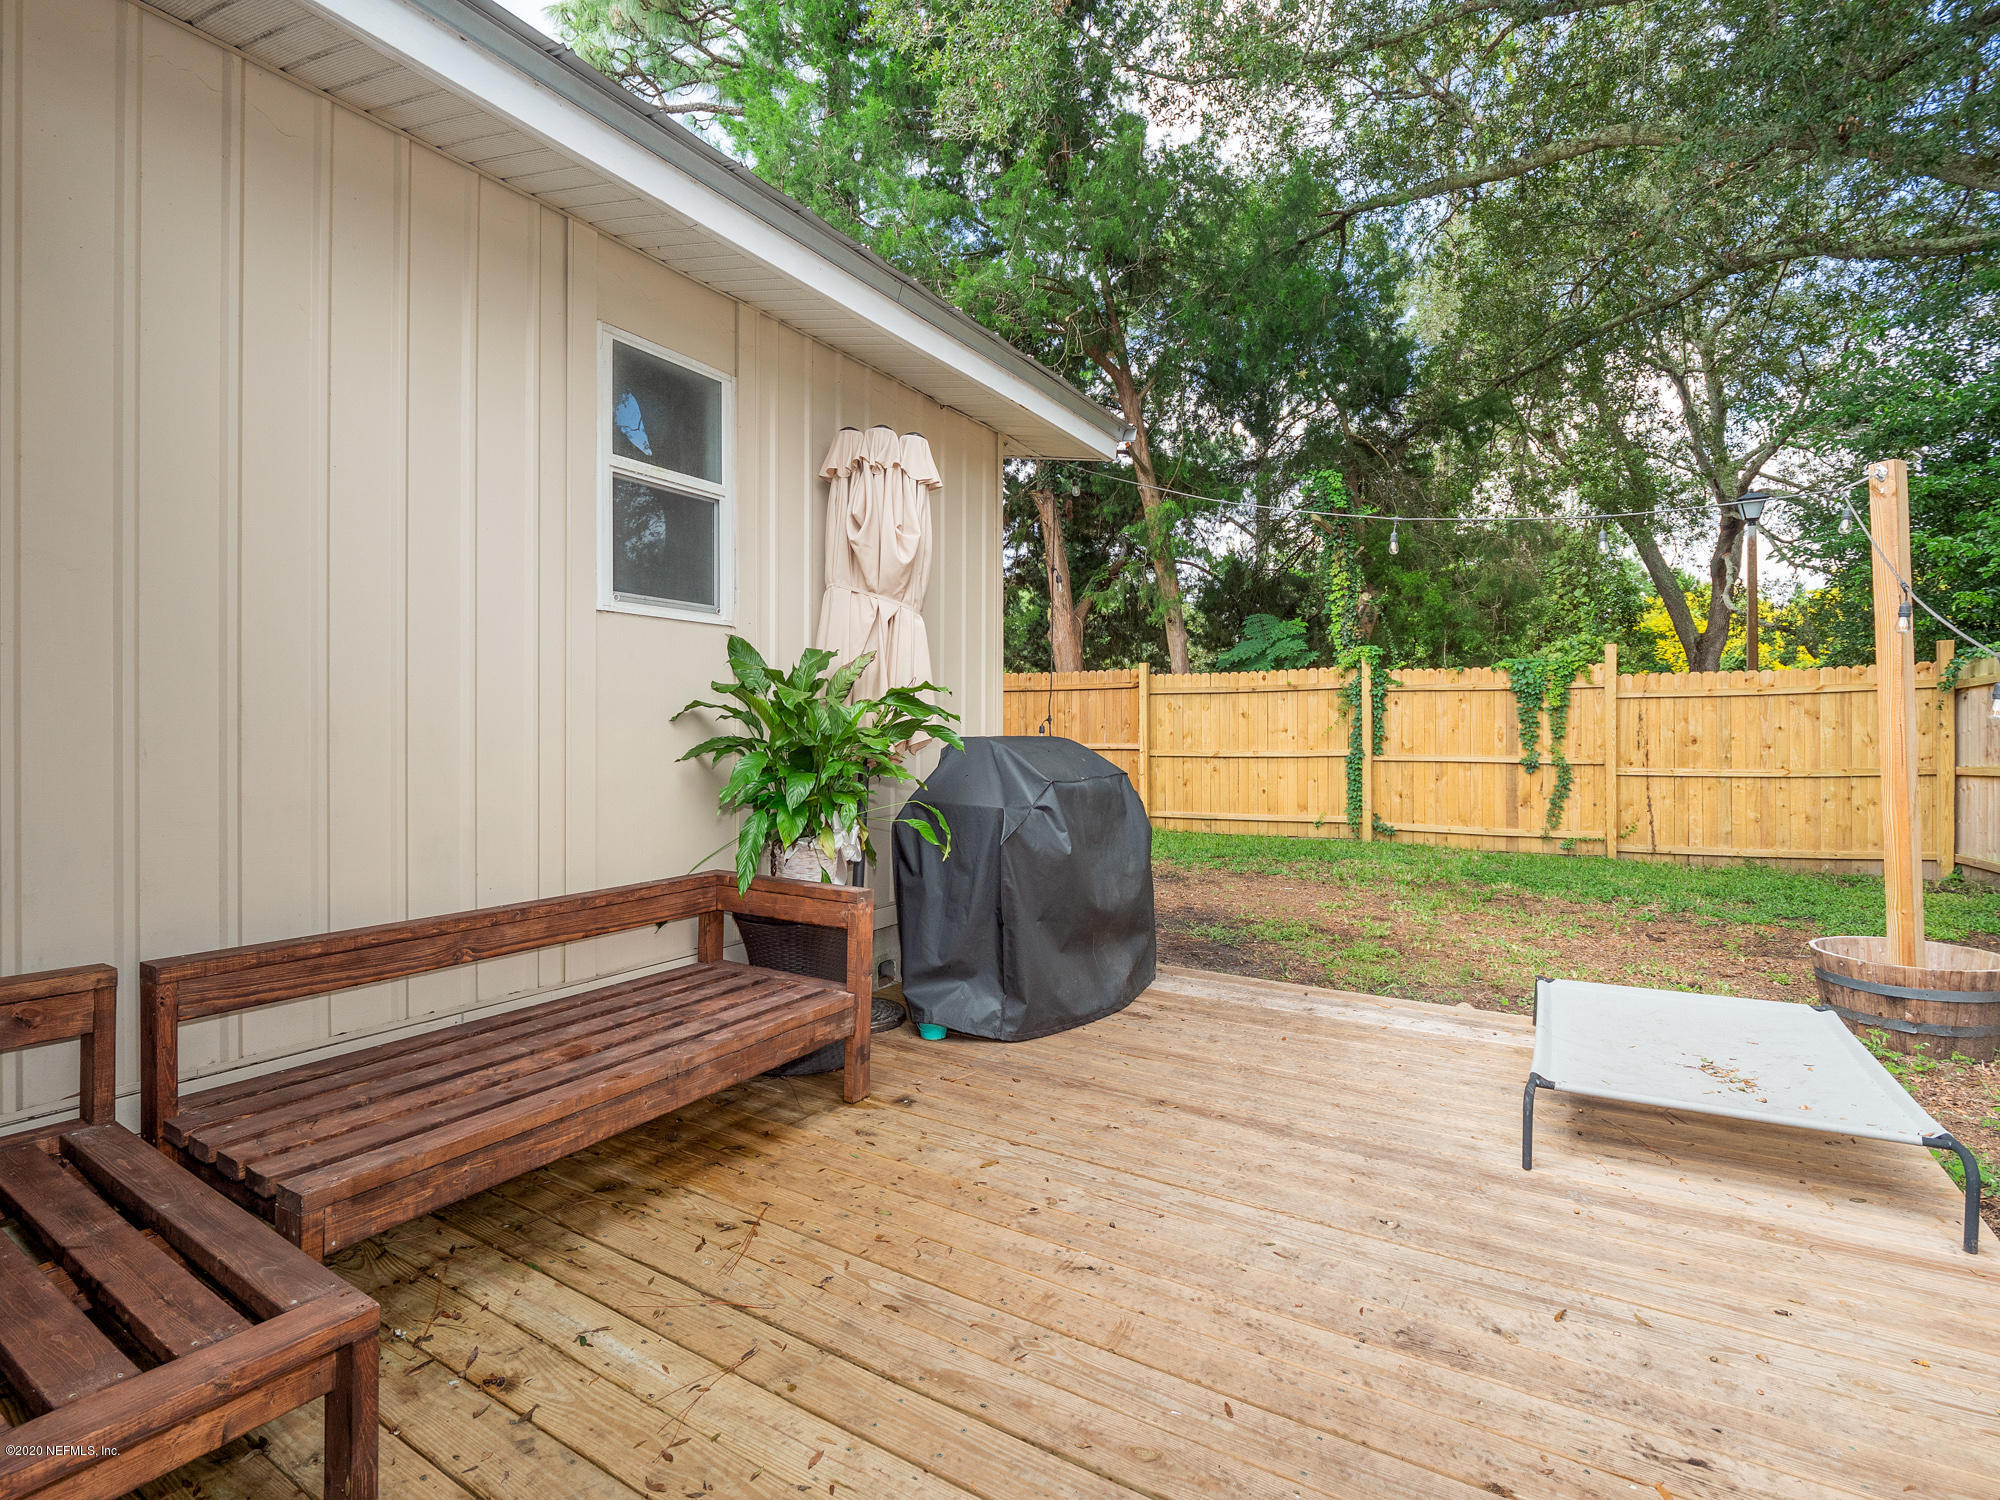 910 PALERMO, ST AUGUSTINE, FLORIDA 32086, 2 Bedrooms Bedrooms, ,2 BathroomsBathrooms,Residential,For sale,PALERMO,1077035